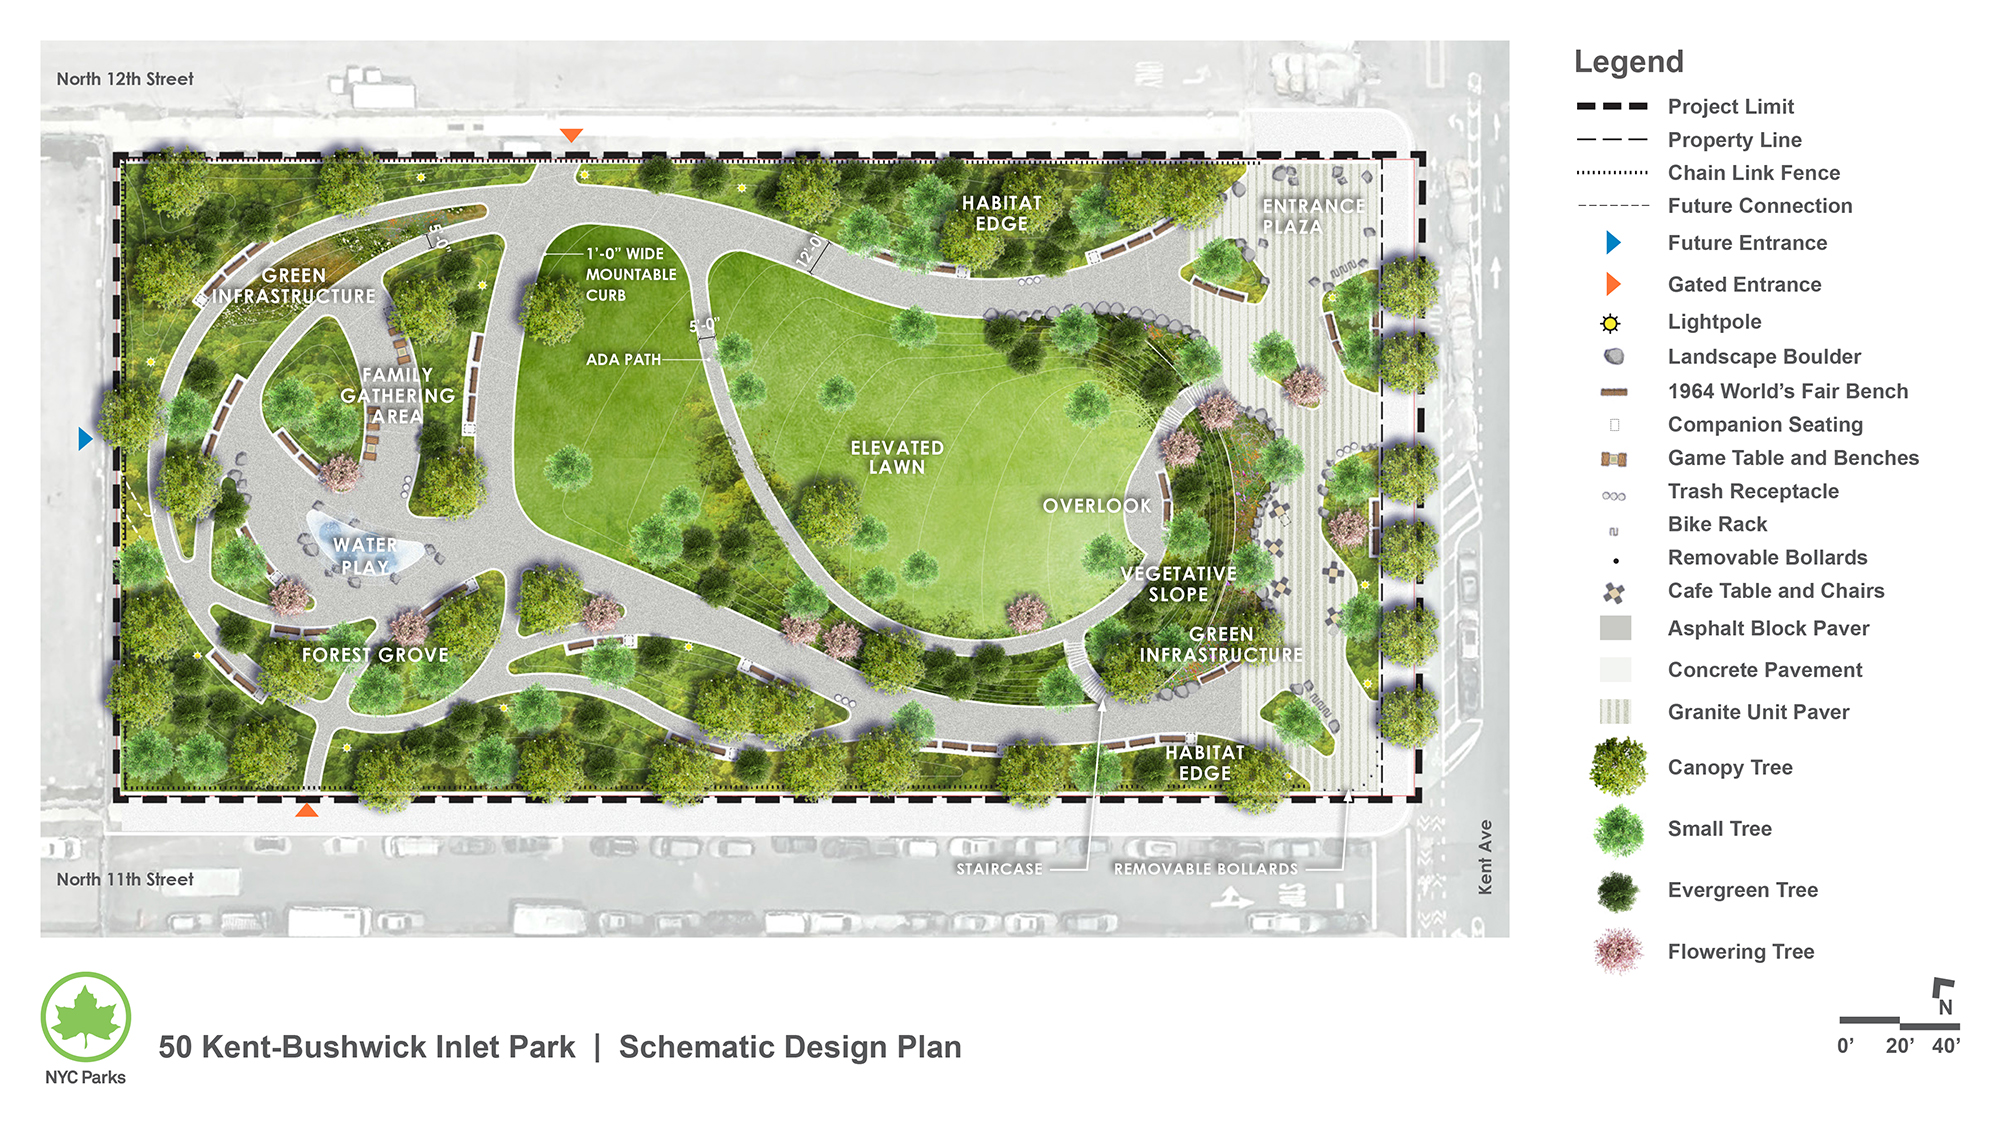 Design of Bushwick Inlet Park (50 Kent Avenue) New Park Construction